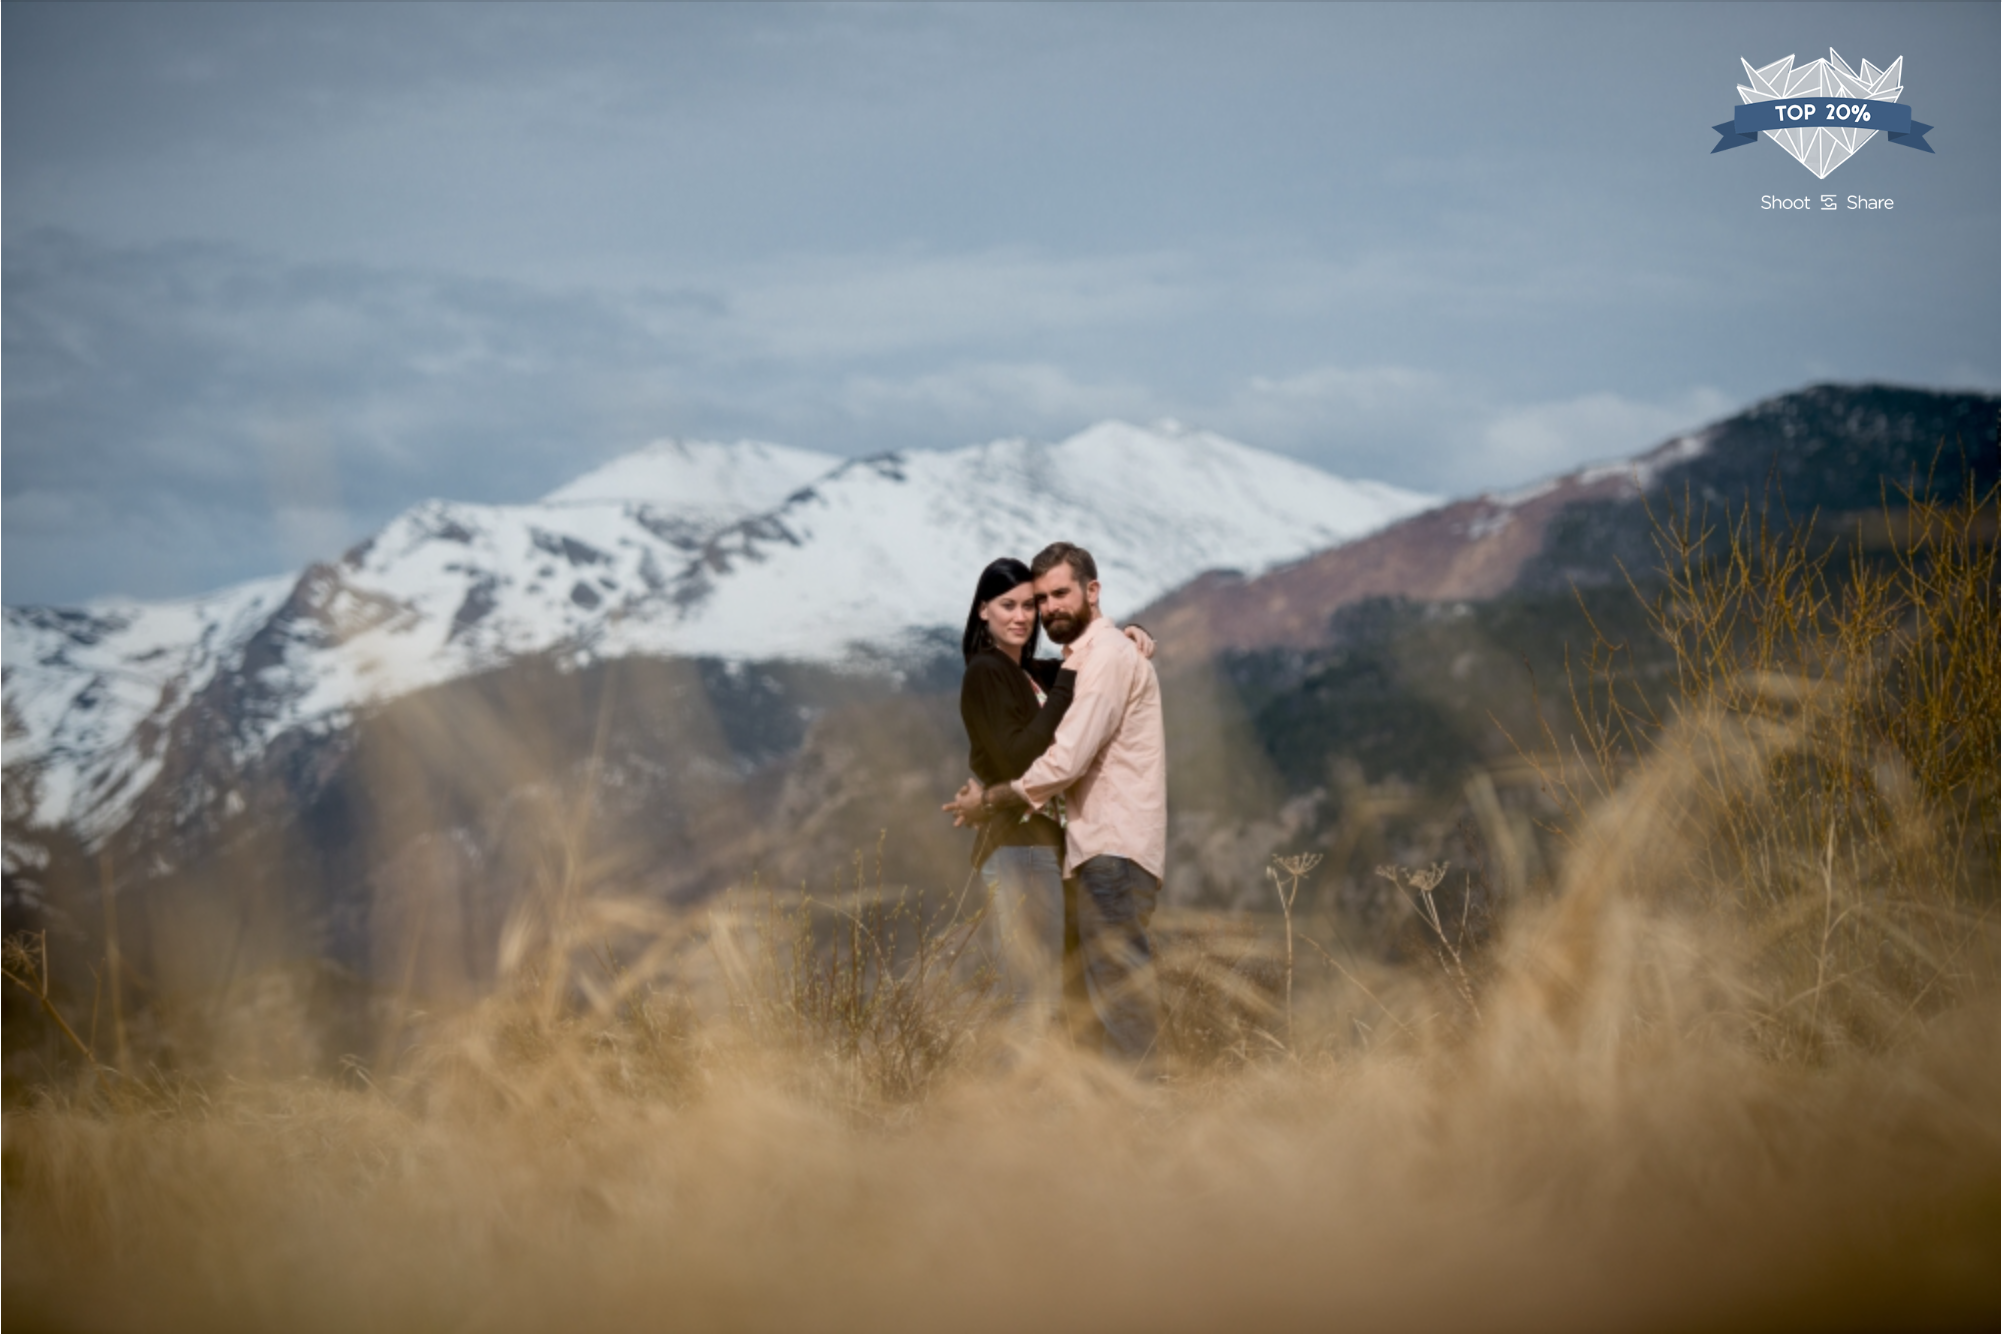 Rocky Mountain National Park Engagement - Engagement & Couples Category - 6,142/ 32,282